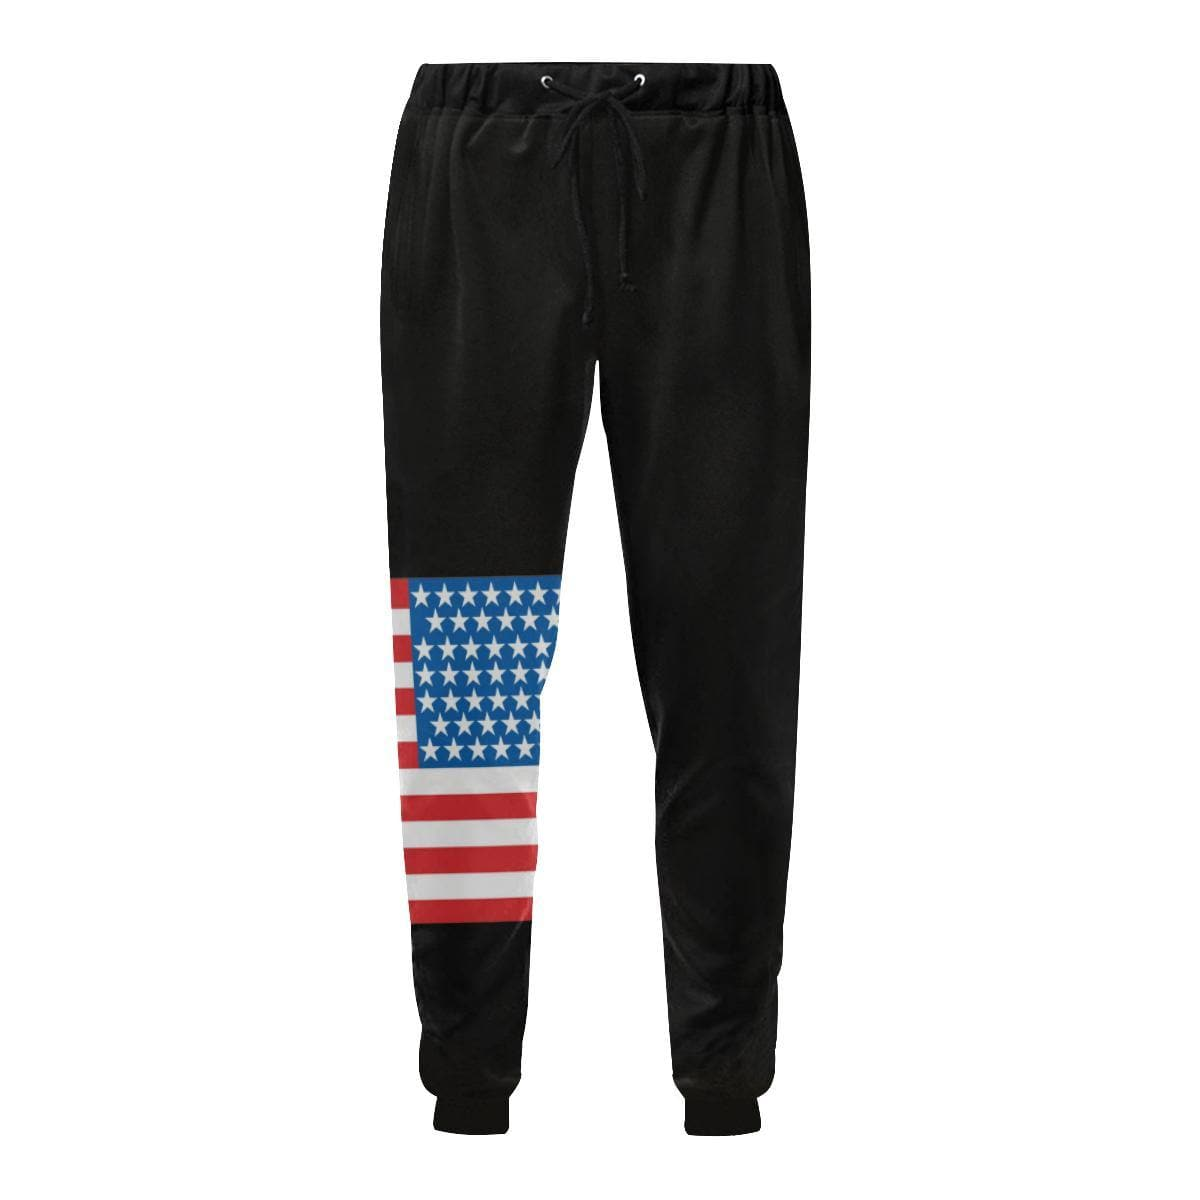 US, ZA, CA Flag Top & Pants Set or Seperate - TFC&H Co.